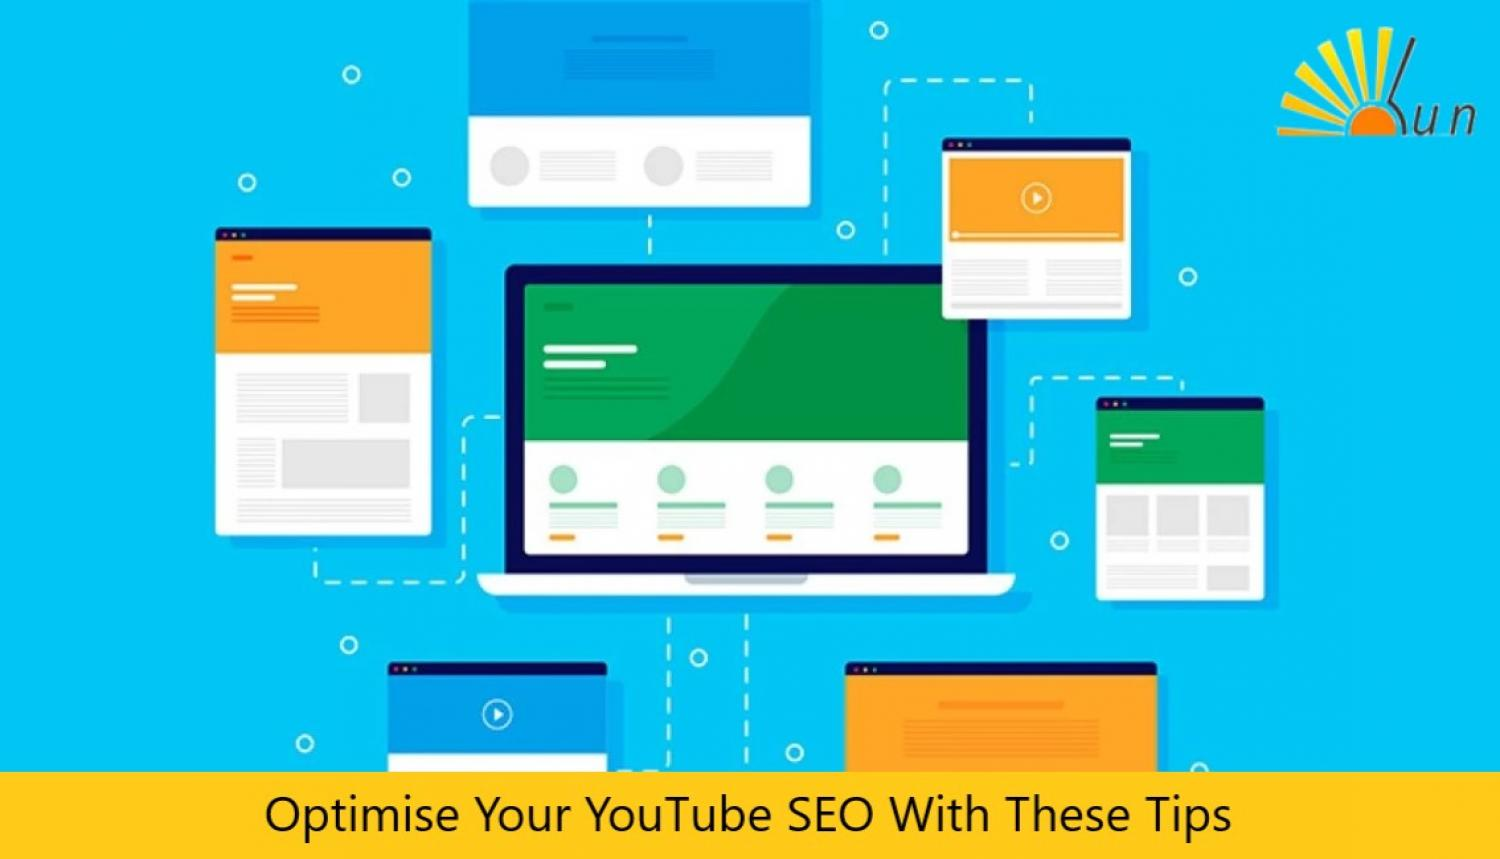 Optimise Your YouTube SEO With These Tips